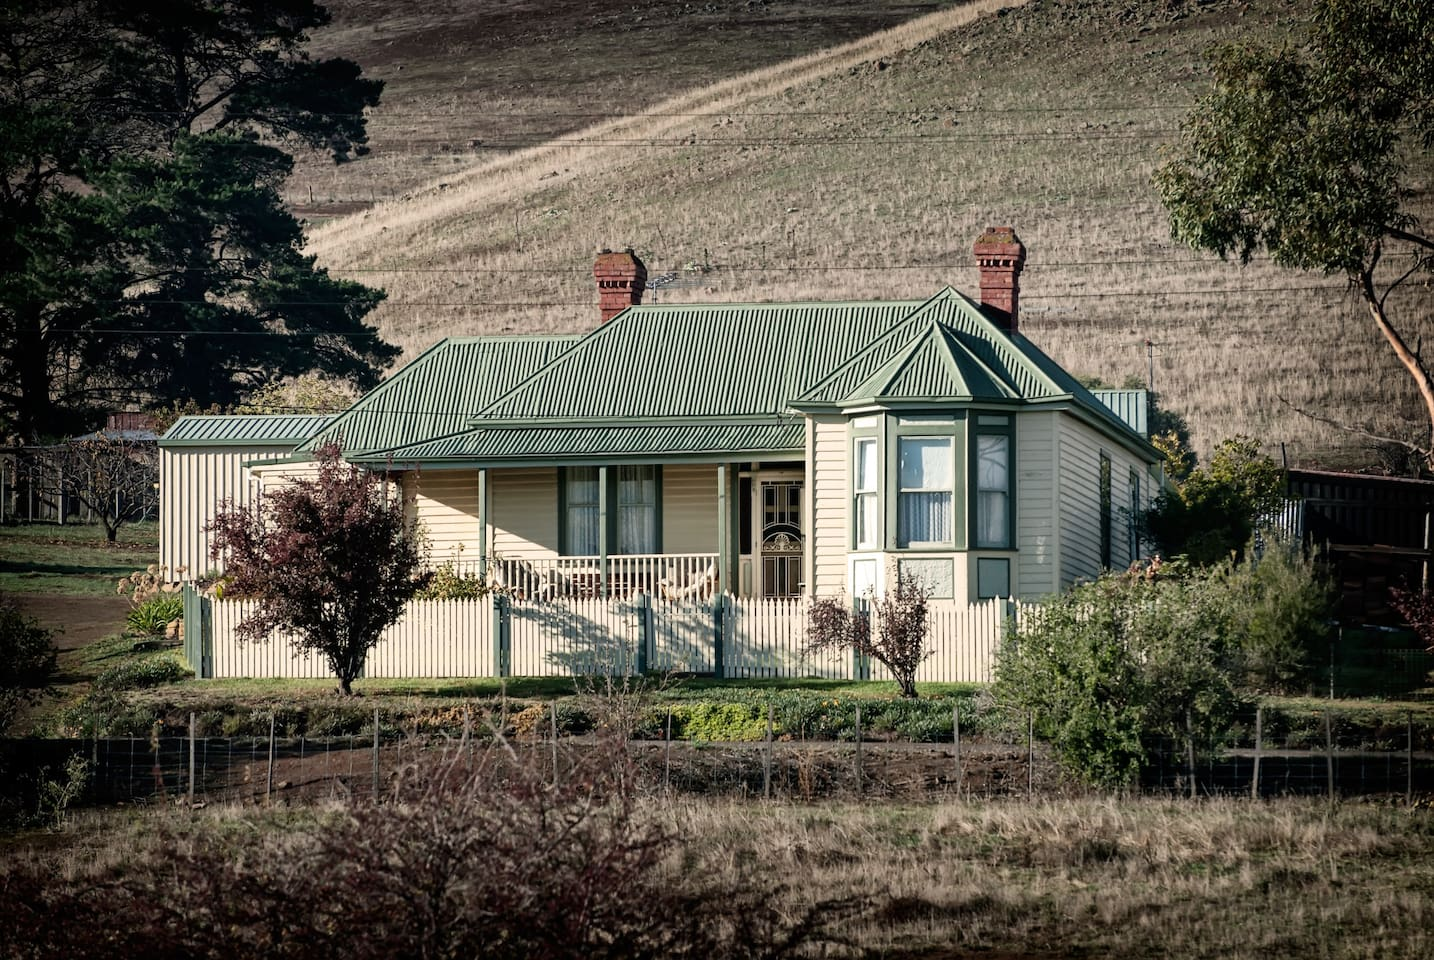 Bonnie Brae Lodge is an excellent Derwent Valley accommodation option on your Lap of Tasmania road trip